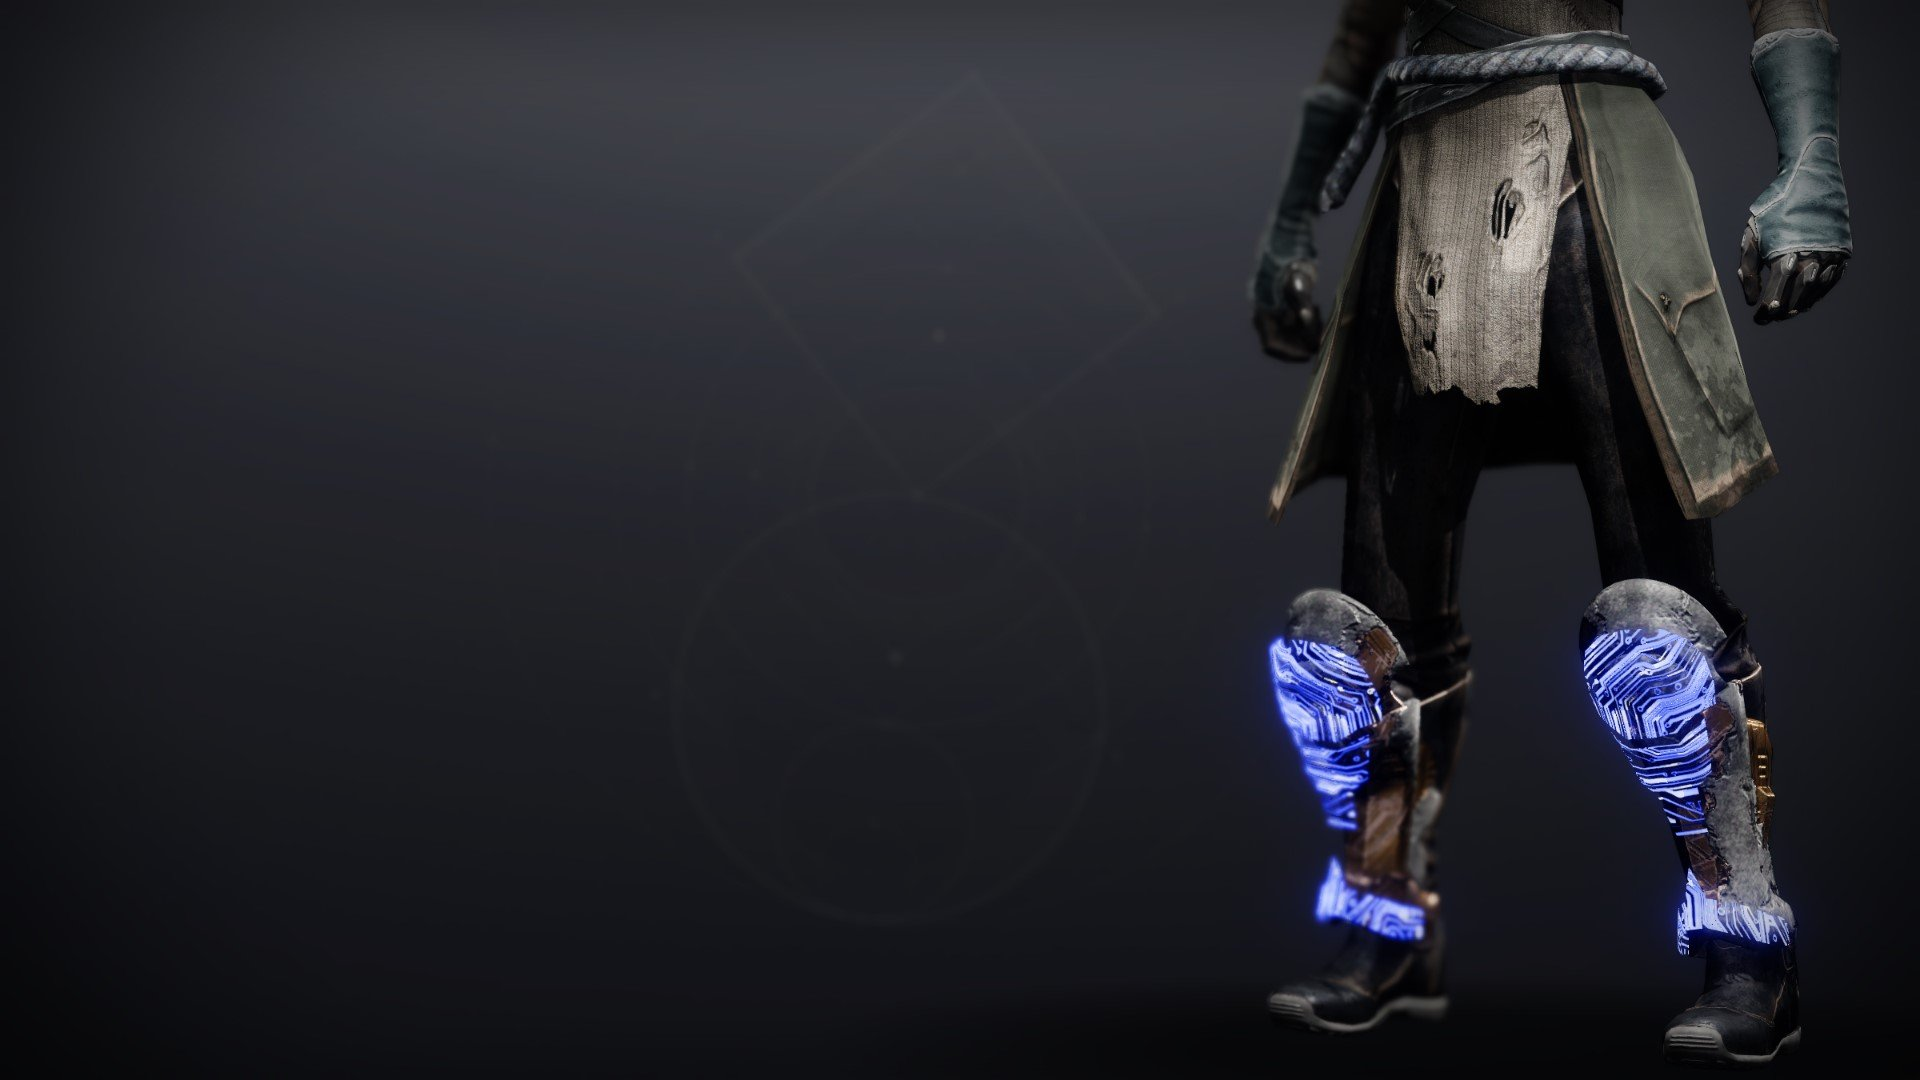 An in-game render of the Boots of Ascendancy.